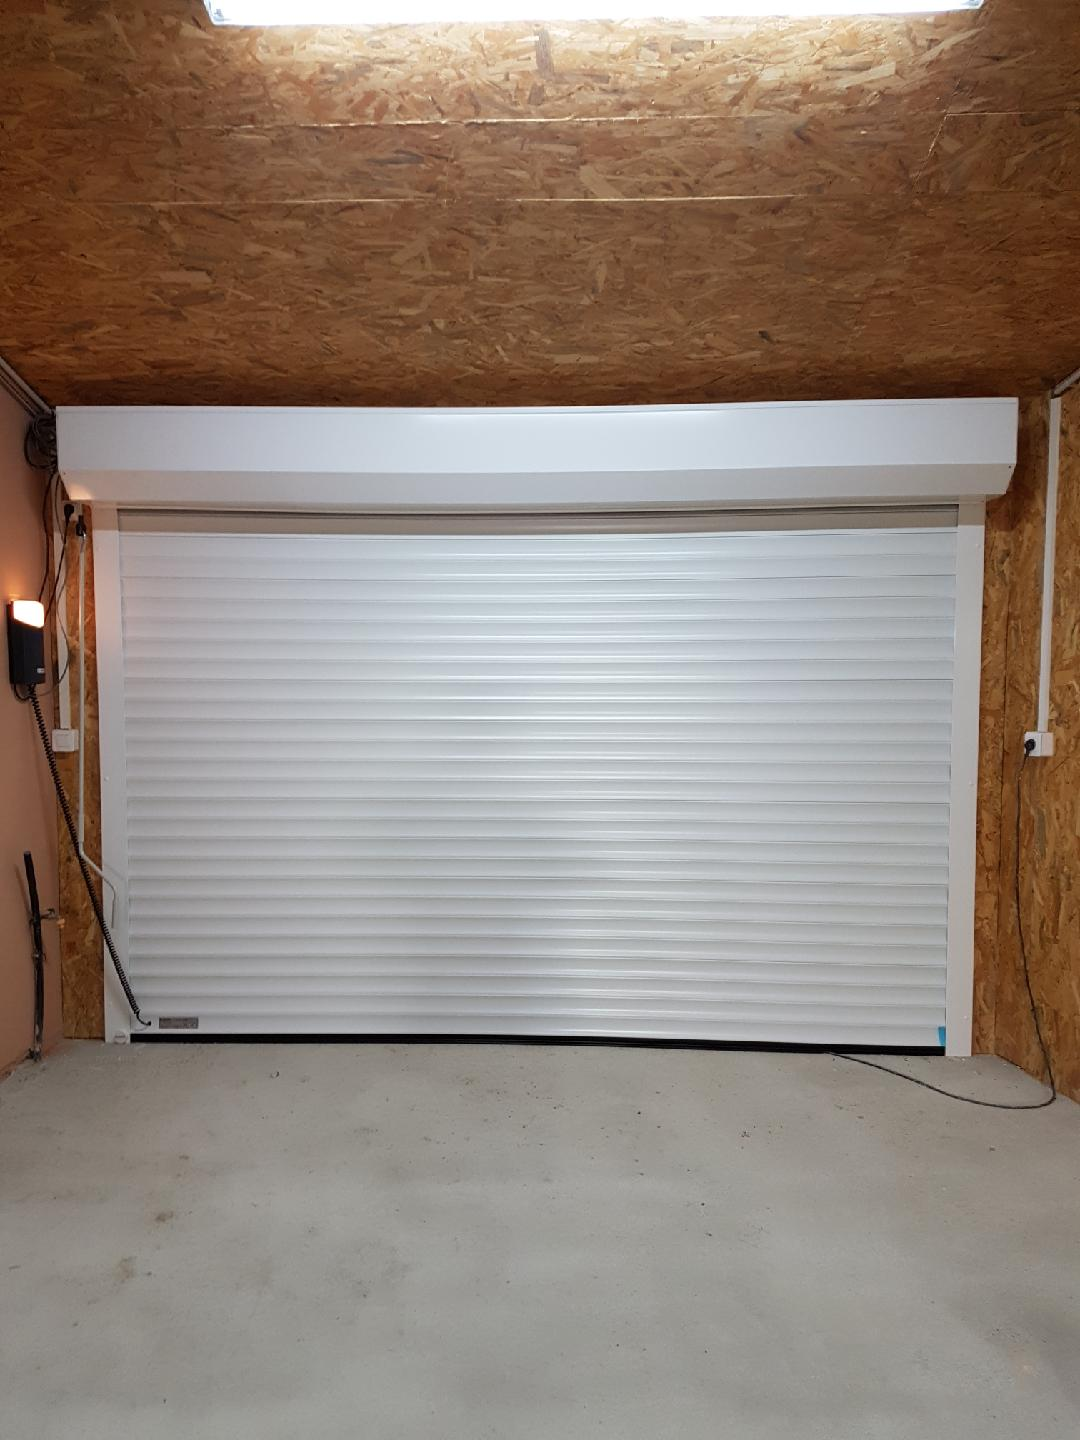 PORTE GARAGE ENROULABLE INTERIEUR copie